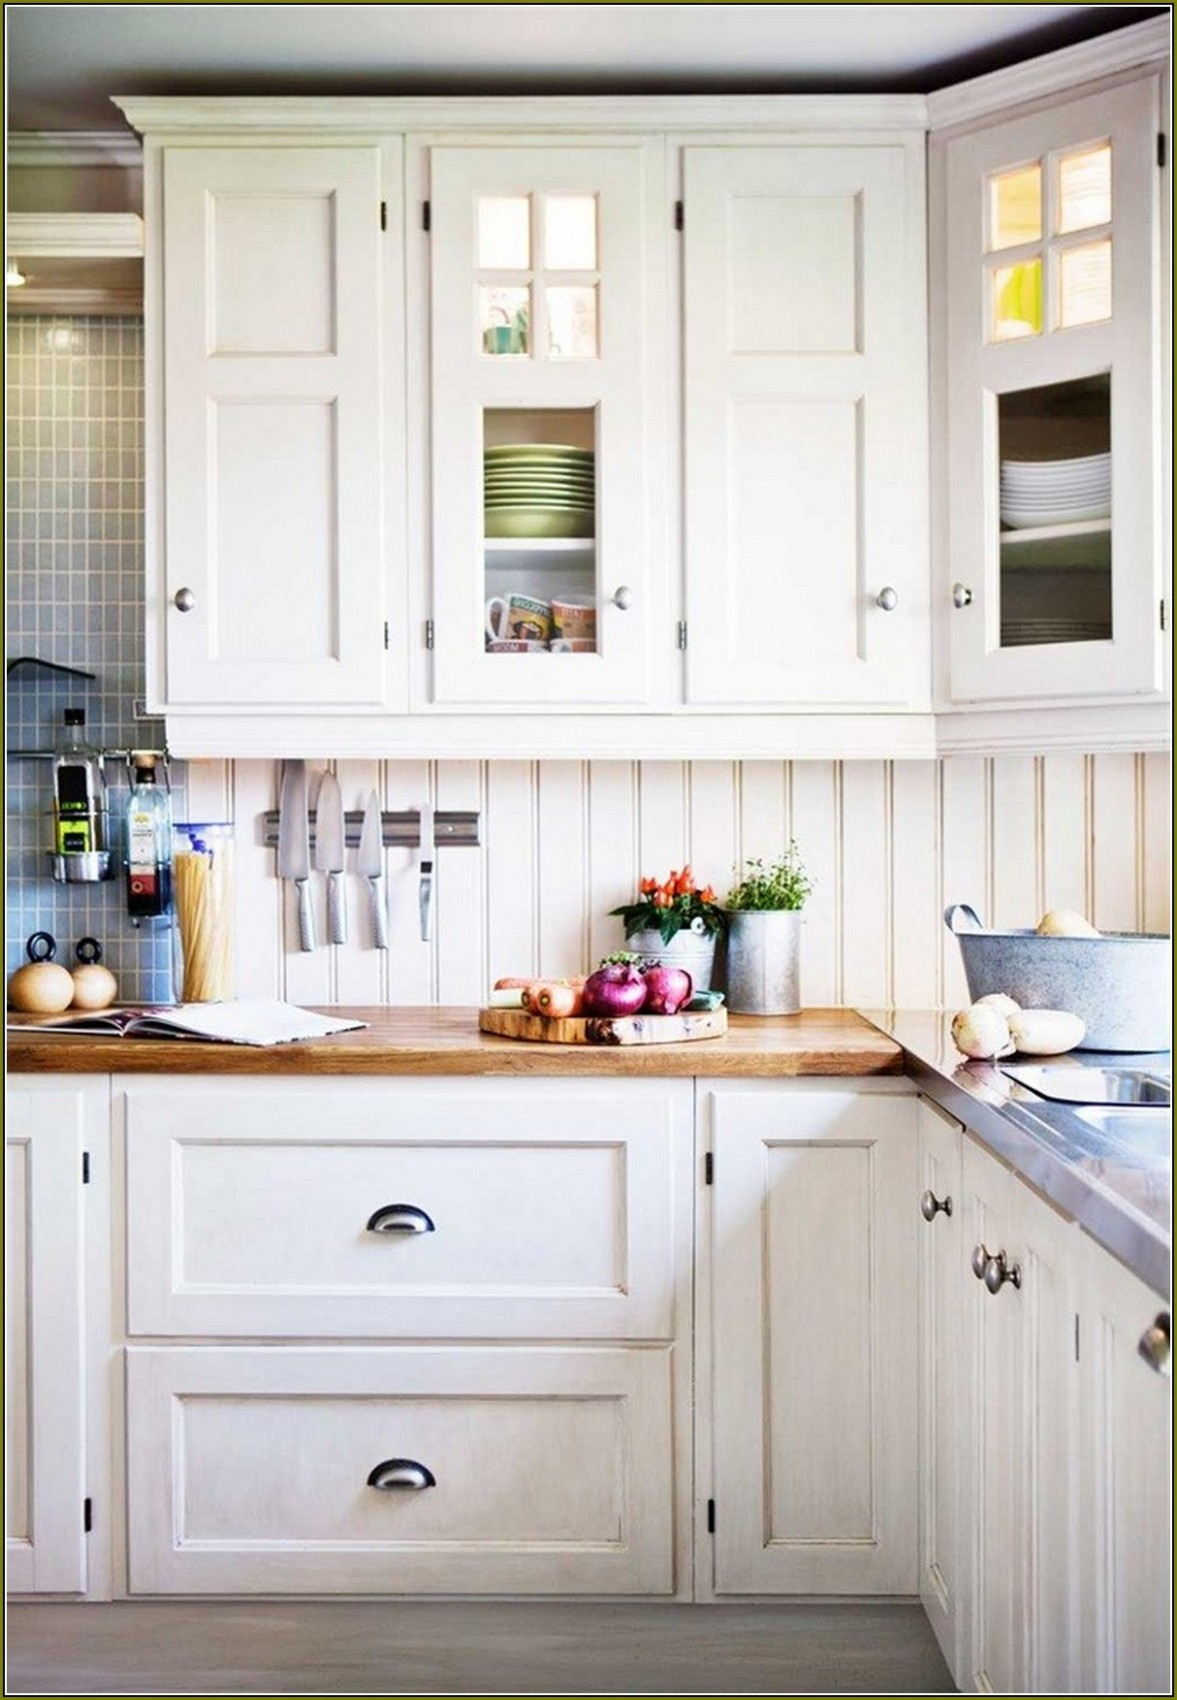 Unique Kitchen Cabinet Hardware Ideas Pulls Or Knobs Idea  - Unique Kitchen Cabinets Knobs